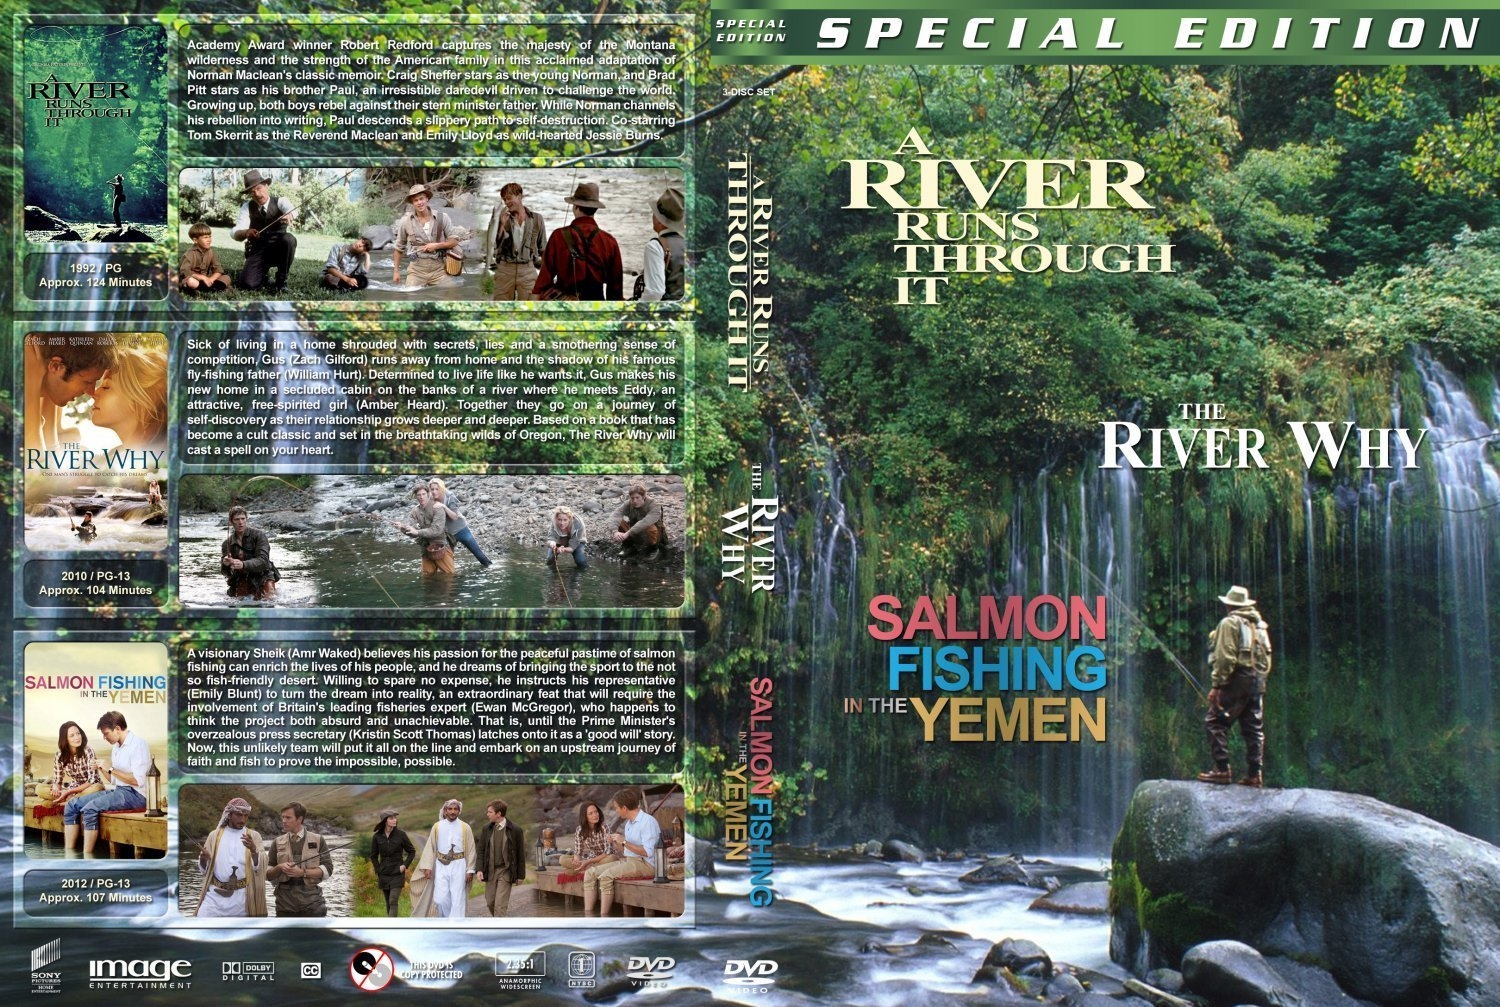 comparing the movie and book version of a river runs through it A river runs through it directed by robert redford screenplay by richard friedenberg, based on the story by norman maclean director of photography, philippe rousselot edited by lynzee klingman and robert estrin music by mark isham production designer, jon hutman produced by mr redford, patrick markey, annick.